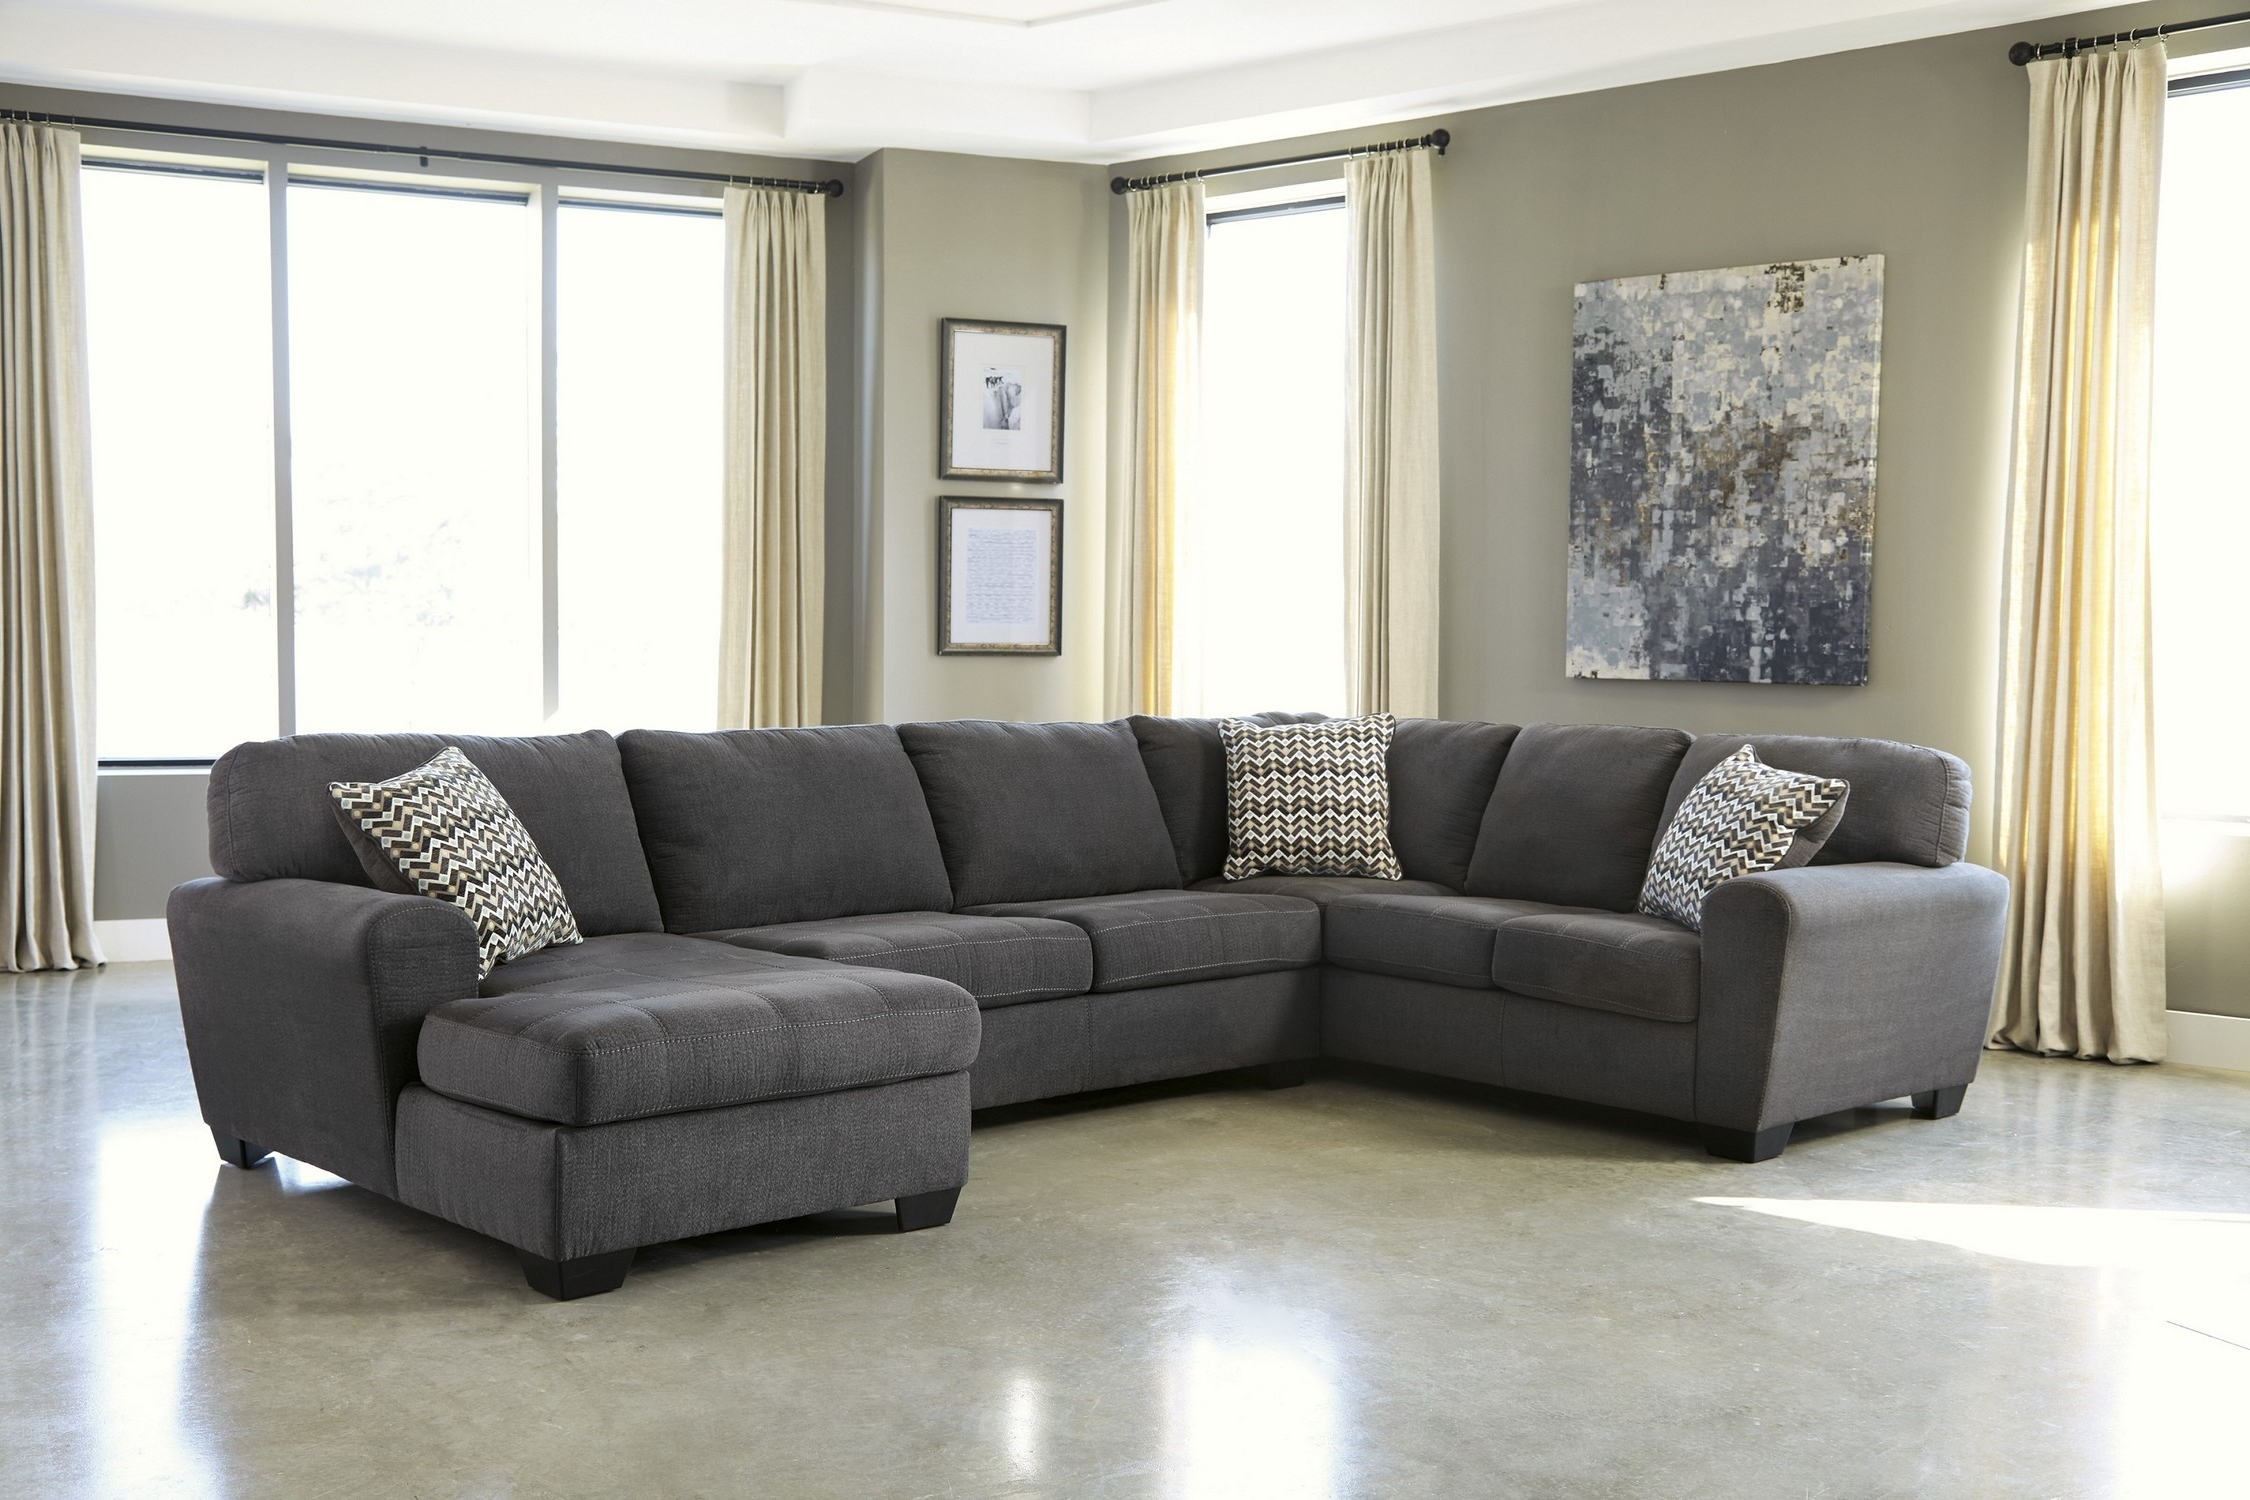 Microfiber Sectional Sofas With Chaise Pertaining To Best And Newest Grey Sectional Sofa Sectional Couches Big Lots Costco Leather (View 14 of 15)